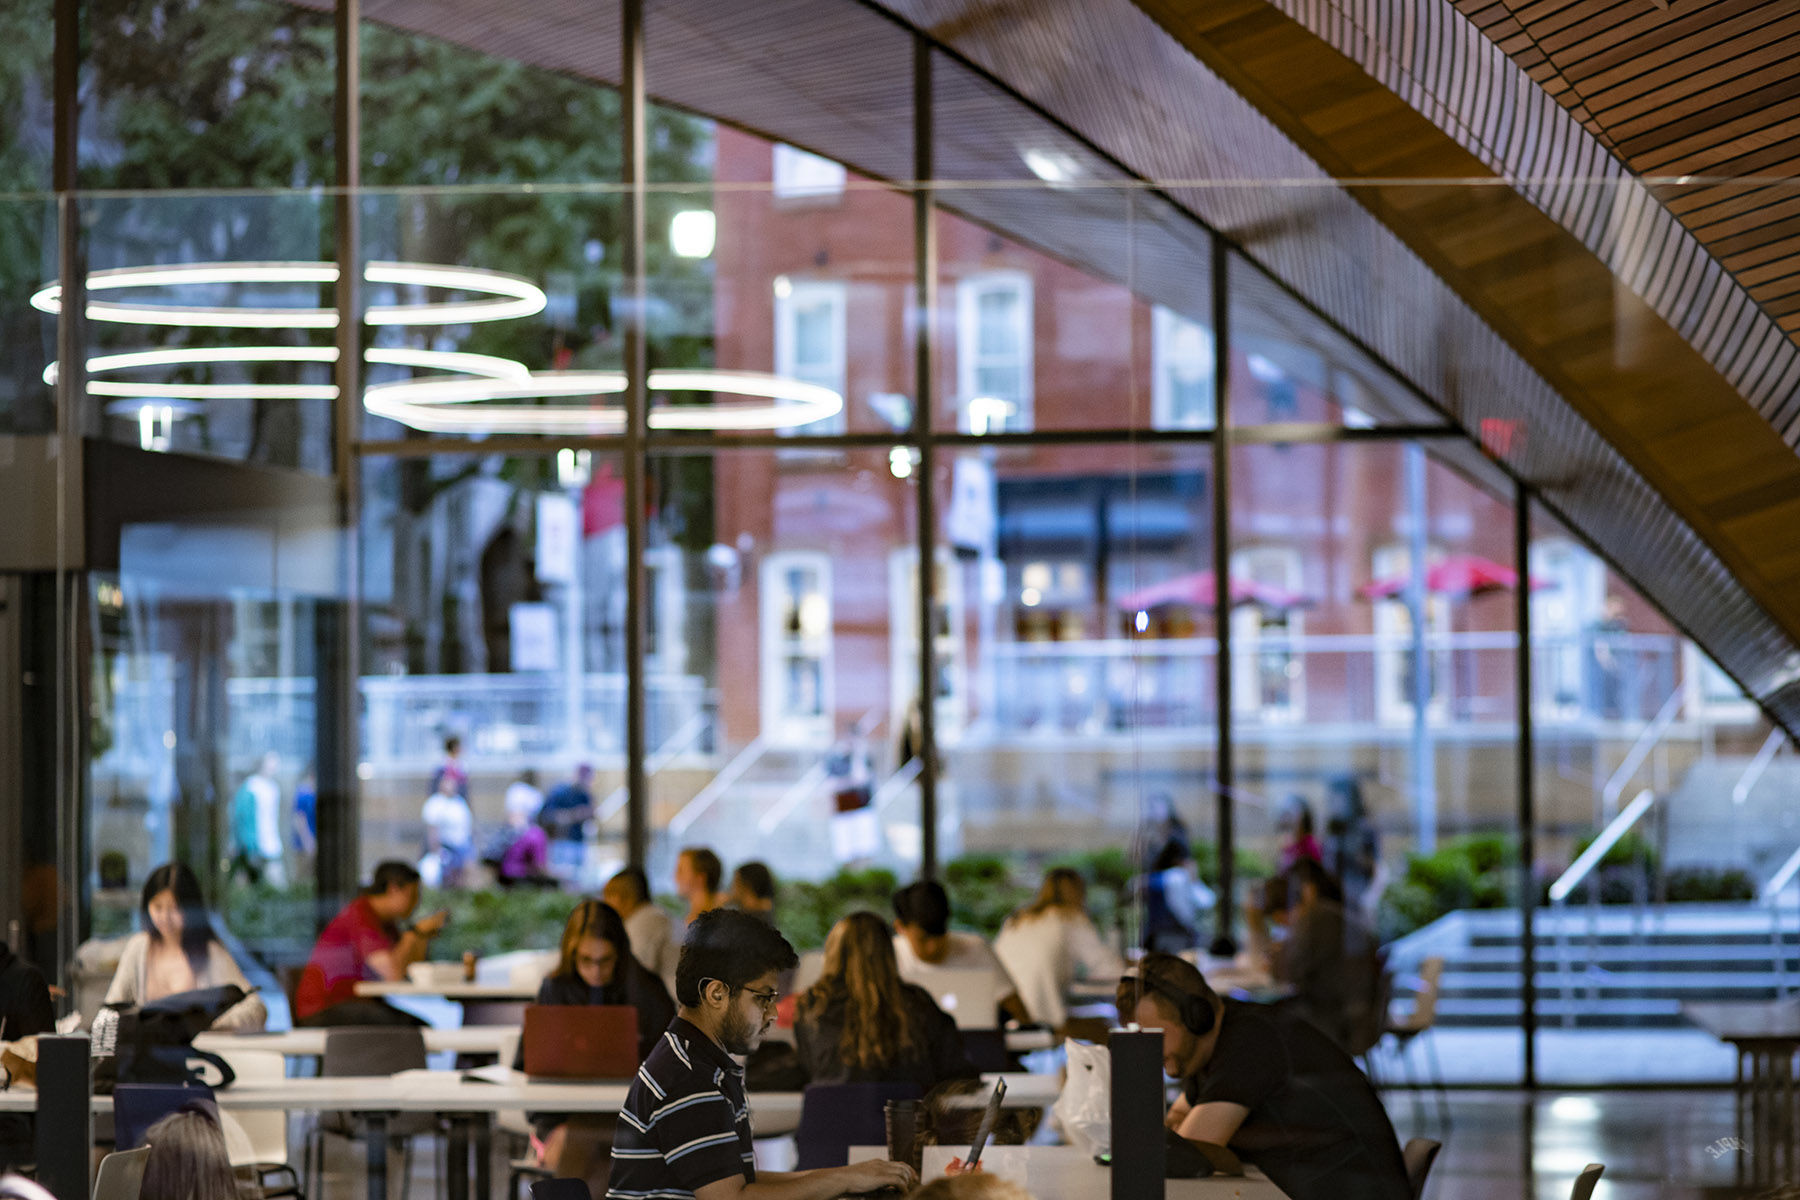 students studying in Charles Library with windows facing out to Liacouras Walk